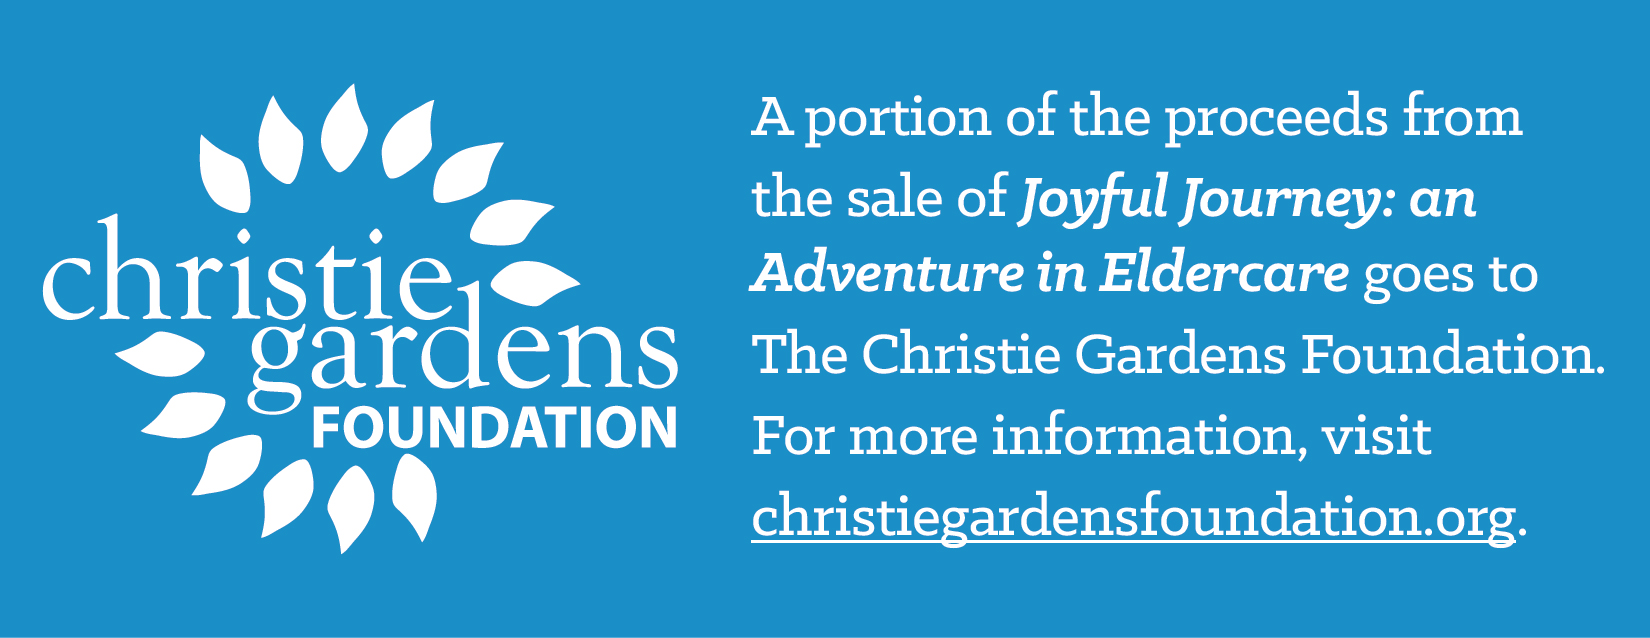 The Christie Gardens Foundation